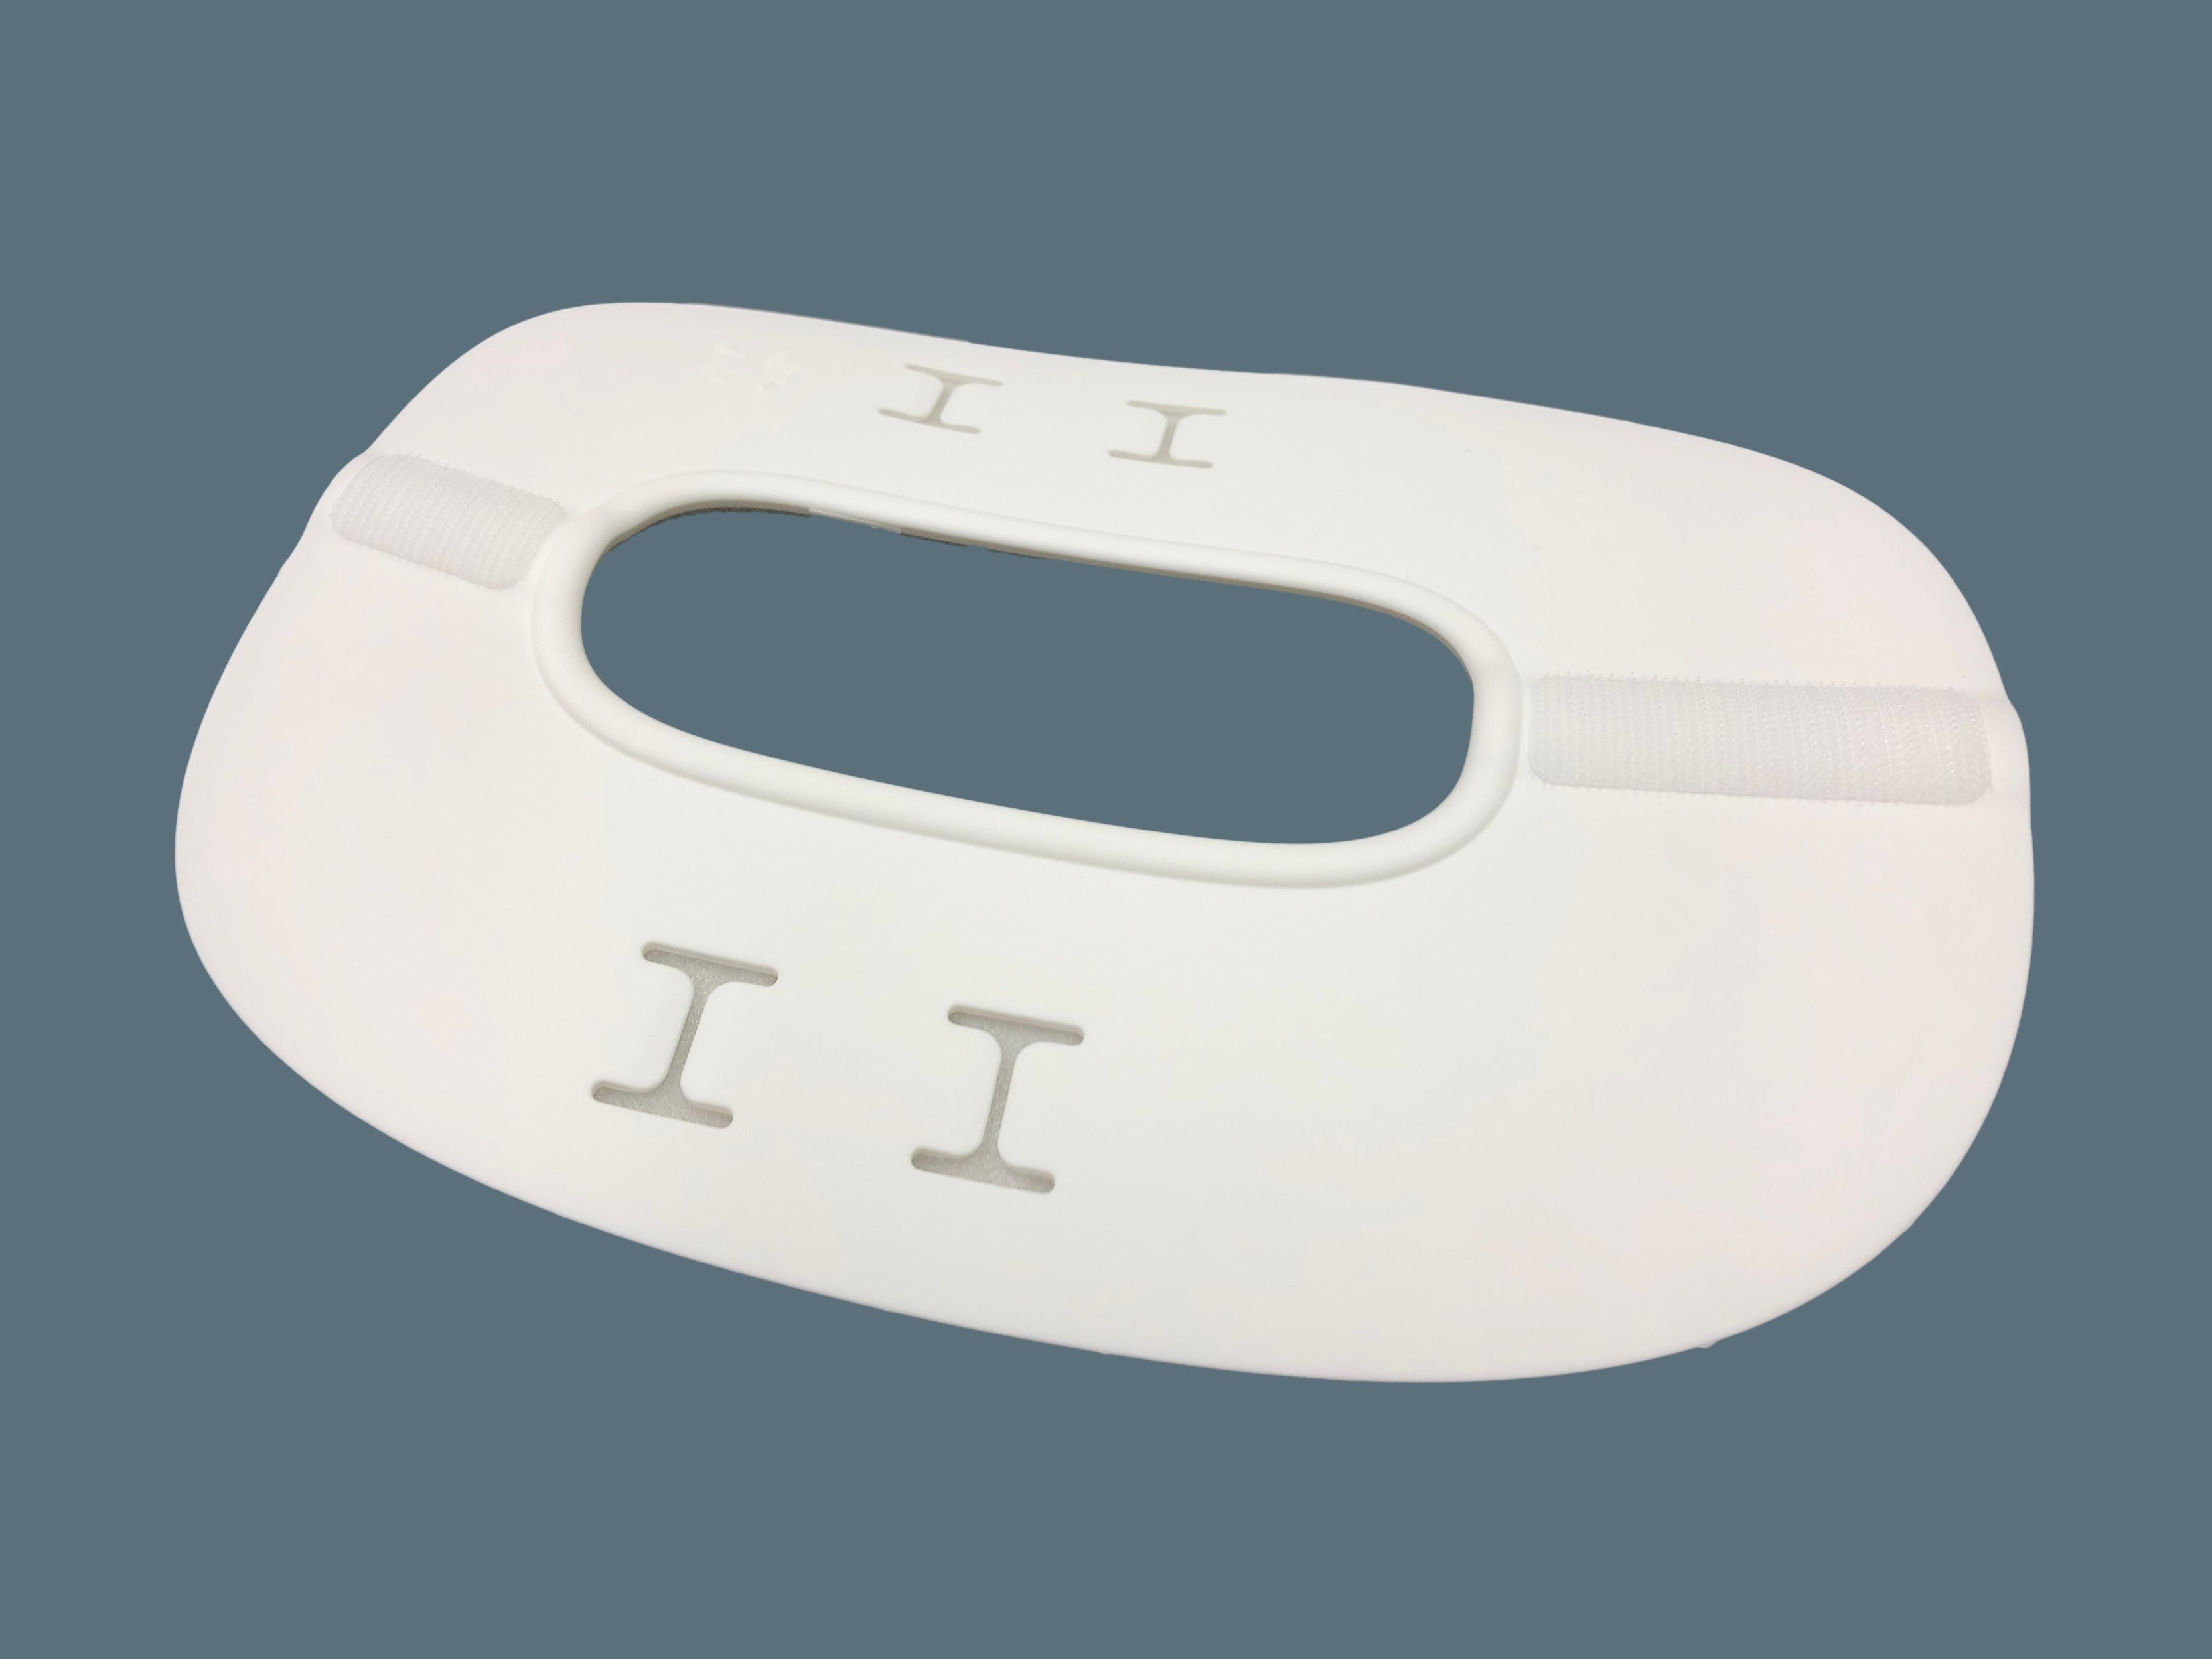 Lumbofit72 - High elastic orthosis with a  thermoformable pad